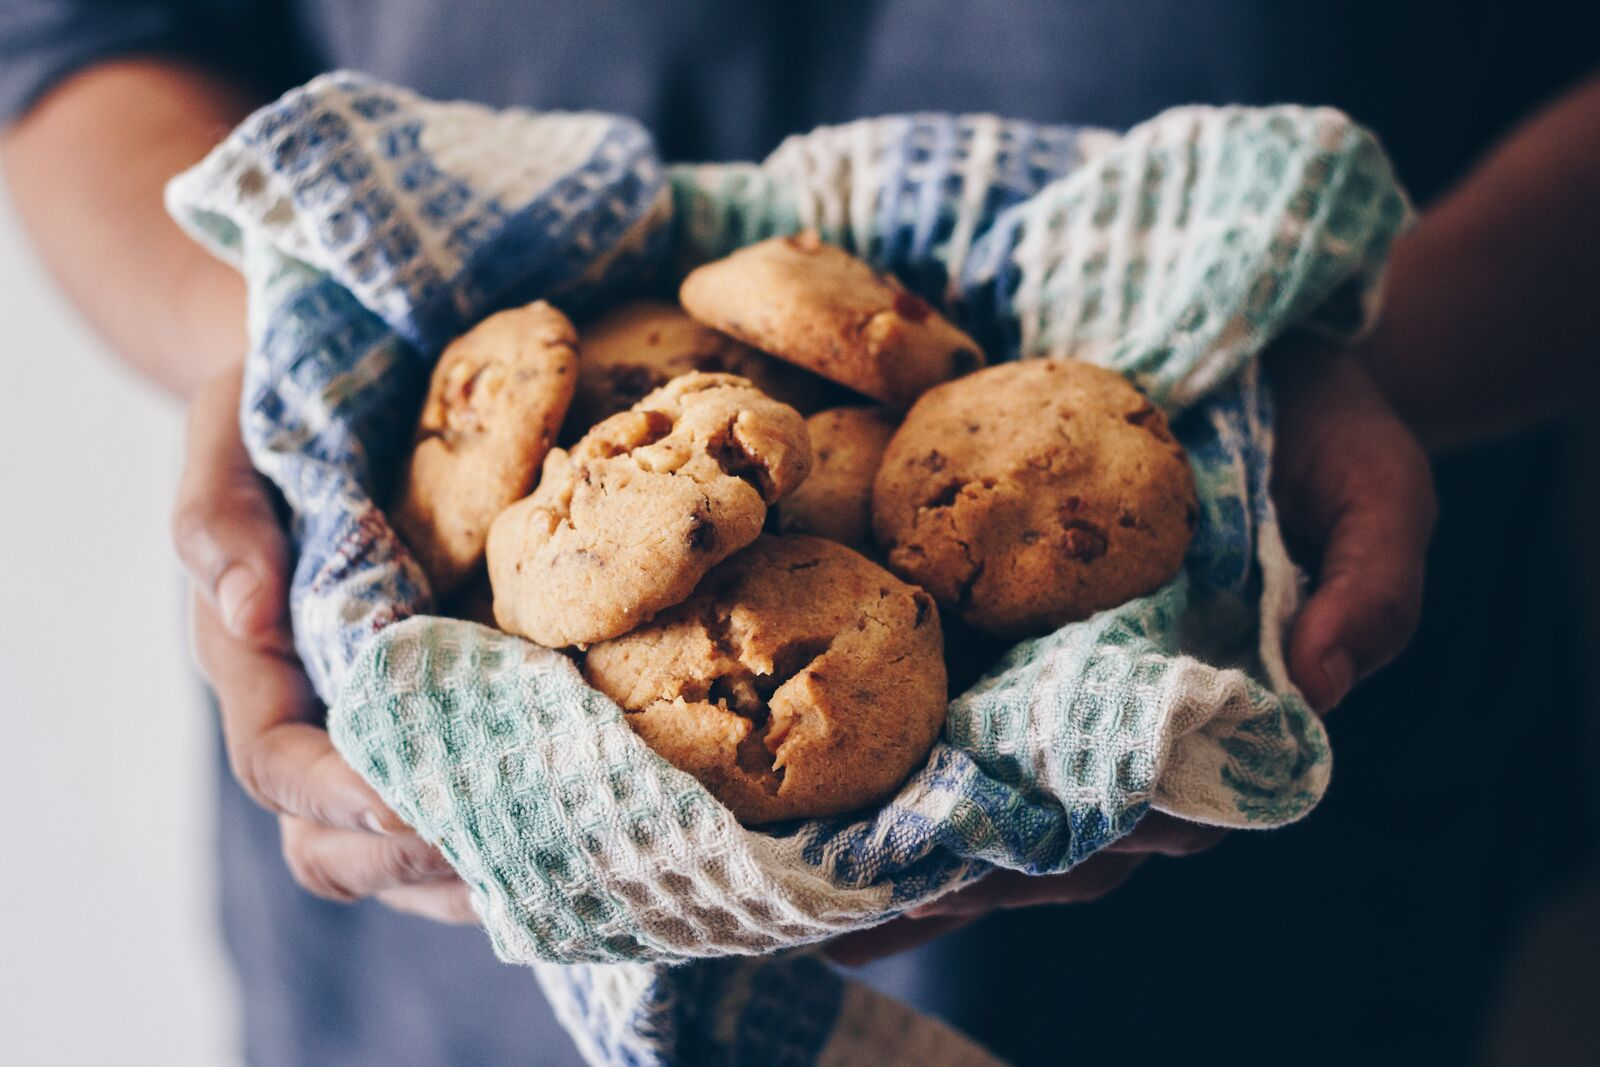 Bunch of cookies held in cloth | Photo: Shutterstock